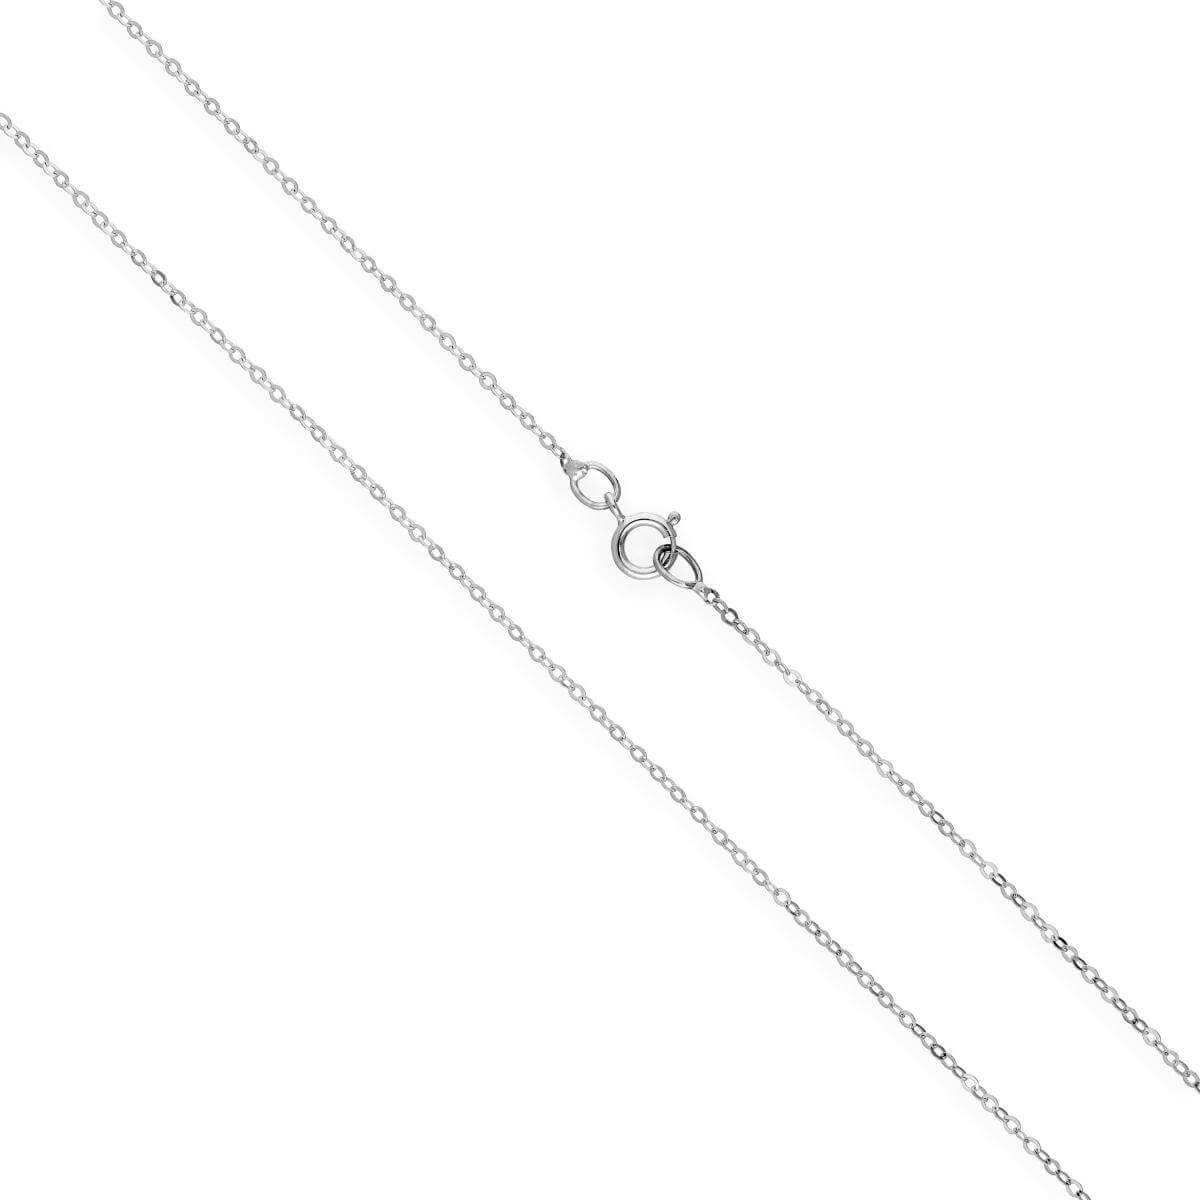 9ct White Gold Hammered Trace Chain 16 - 24 Inches